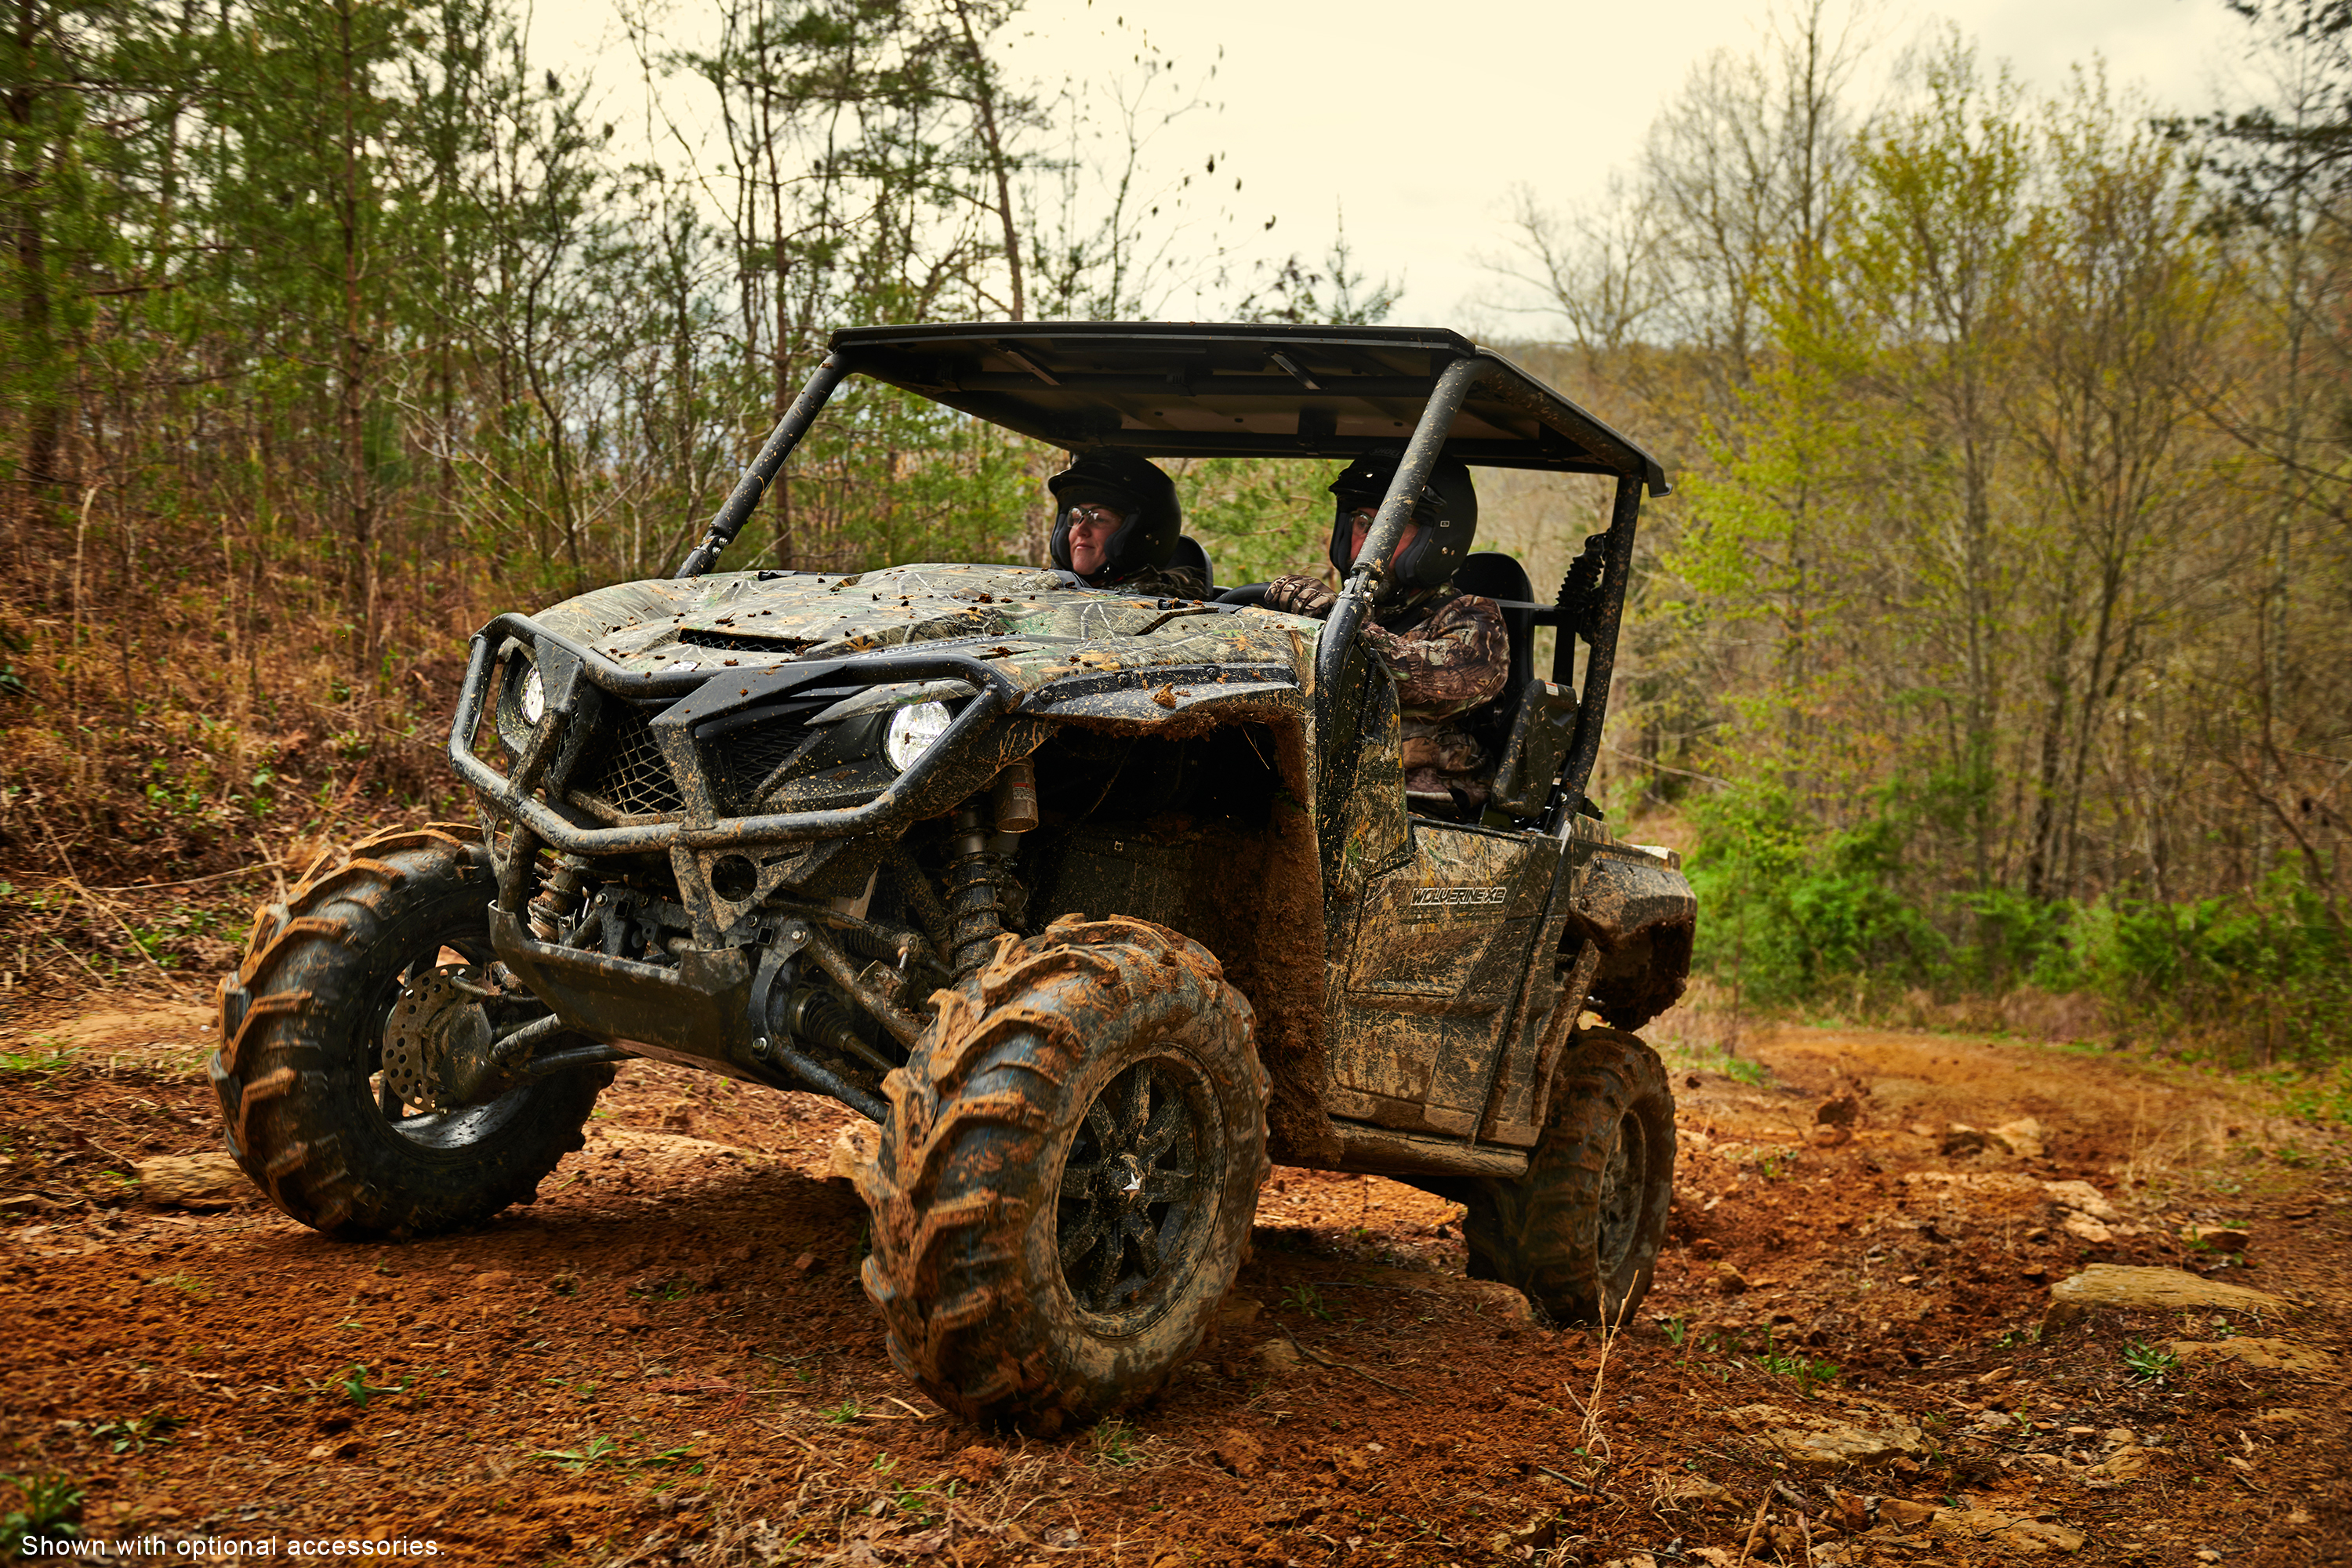 ATV.com Recognizes Yamaha Wolverine X2 for its Real-World Proven Off-Road Capability and Versatility